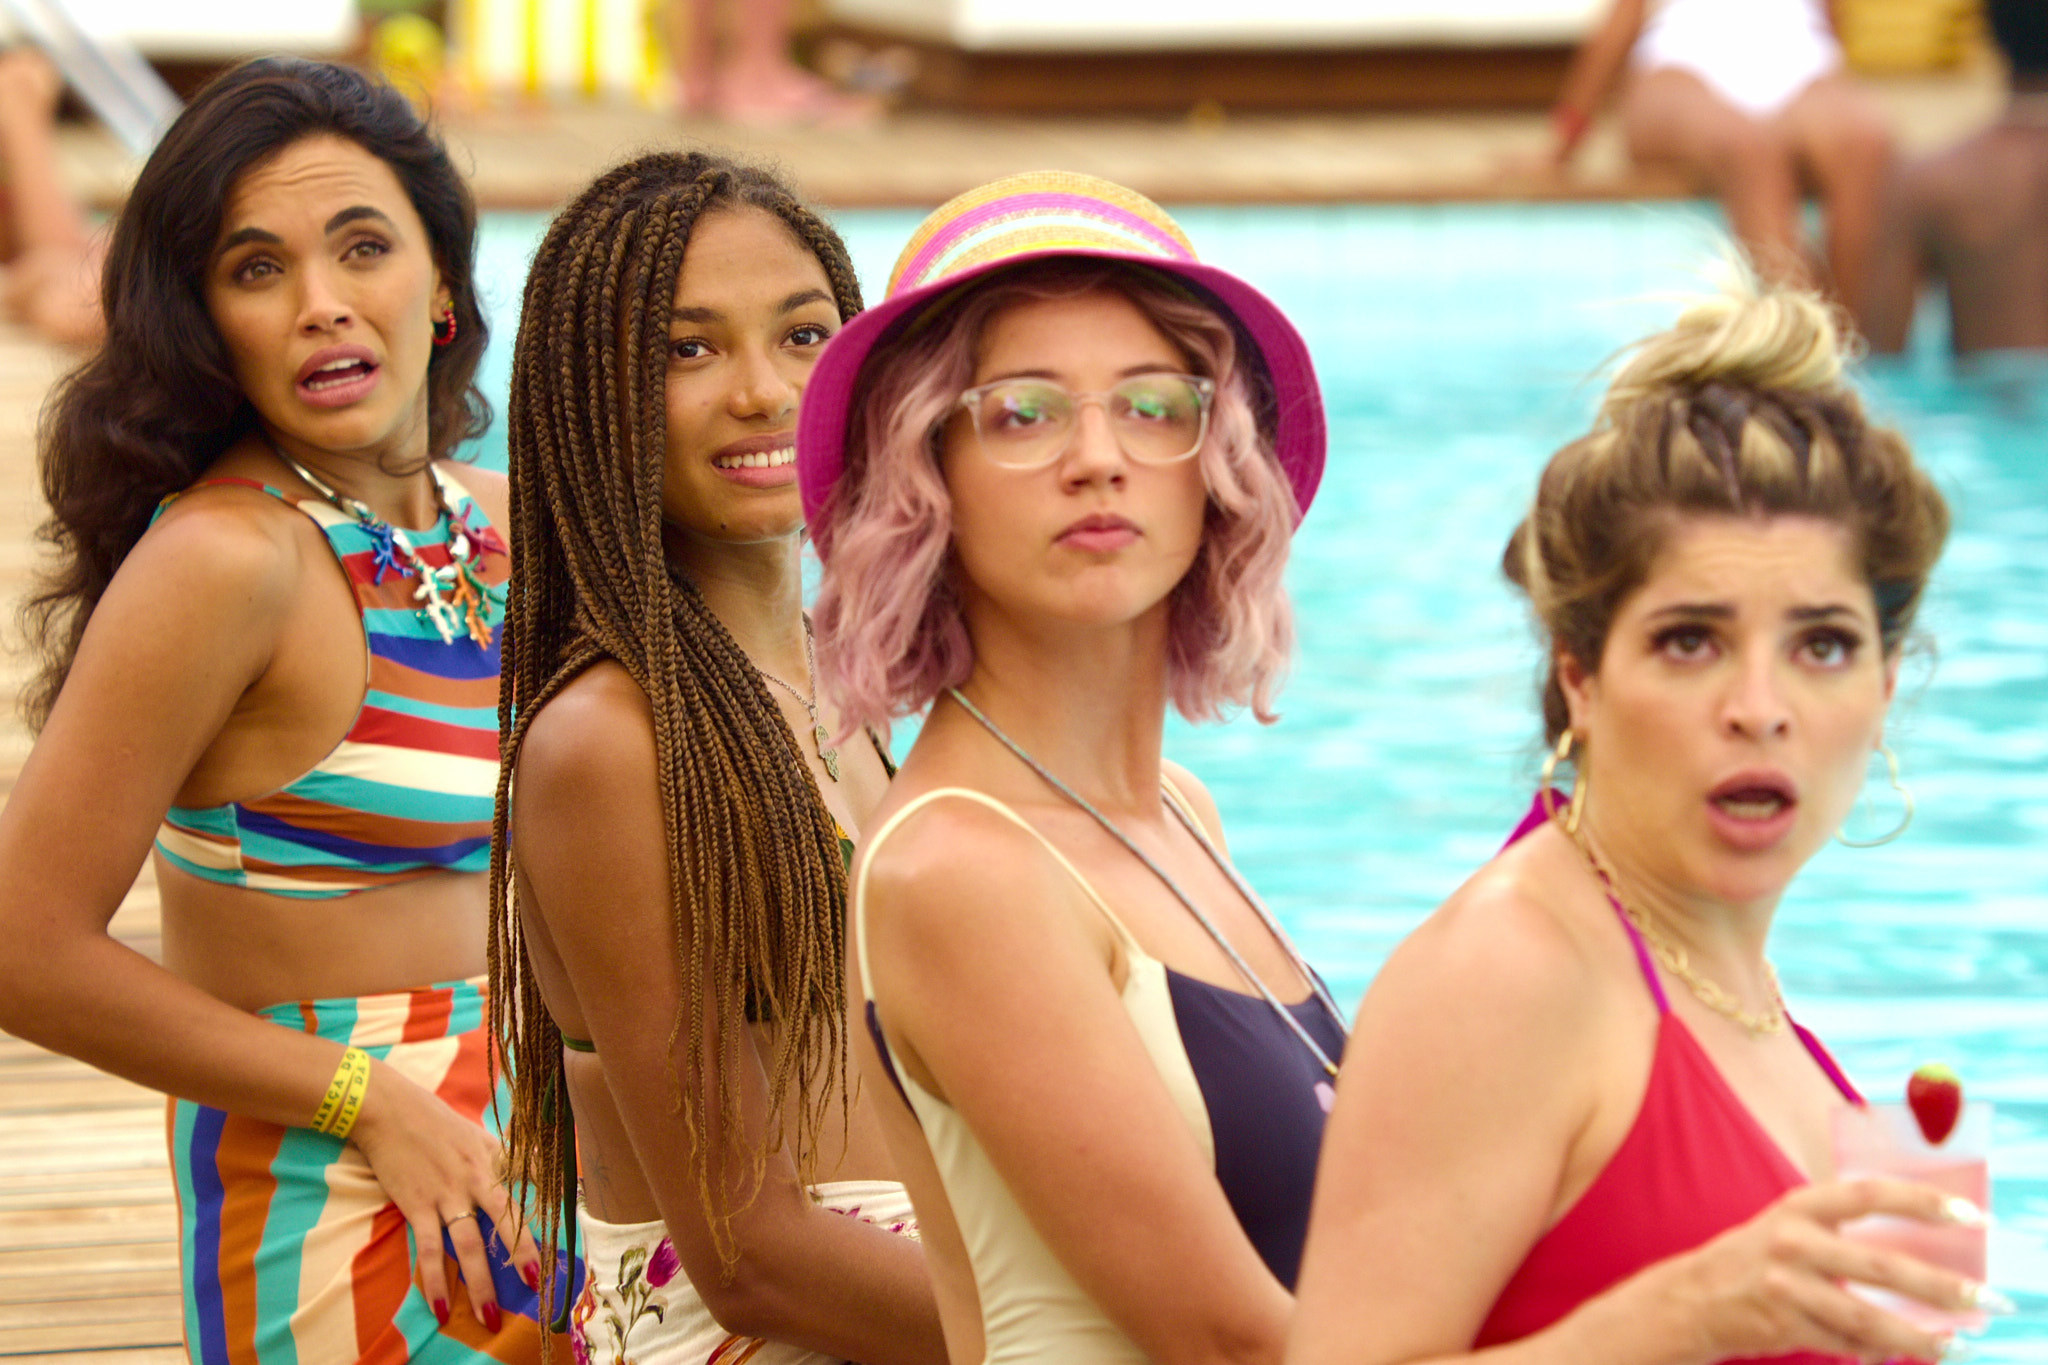 group image of three women by the pool looking in the same direction in the movie titled carnival